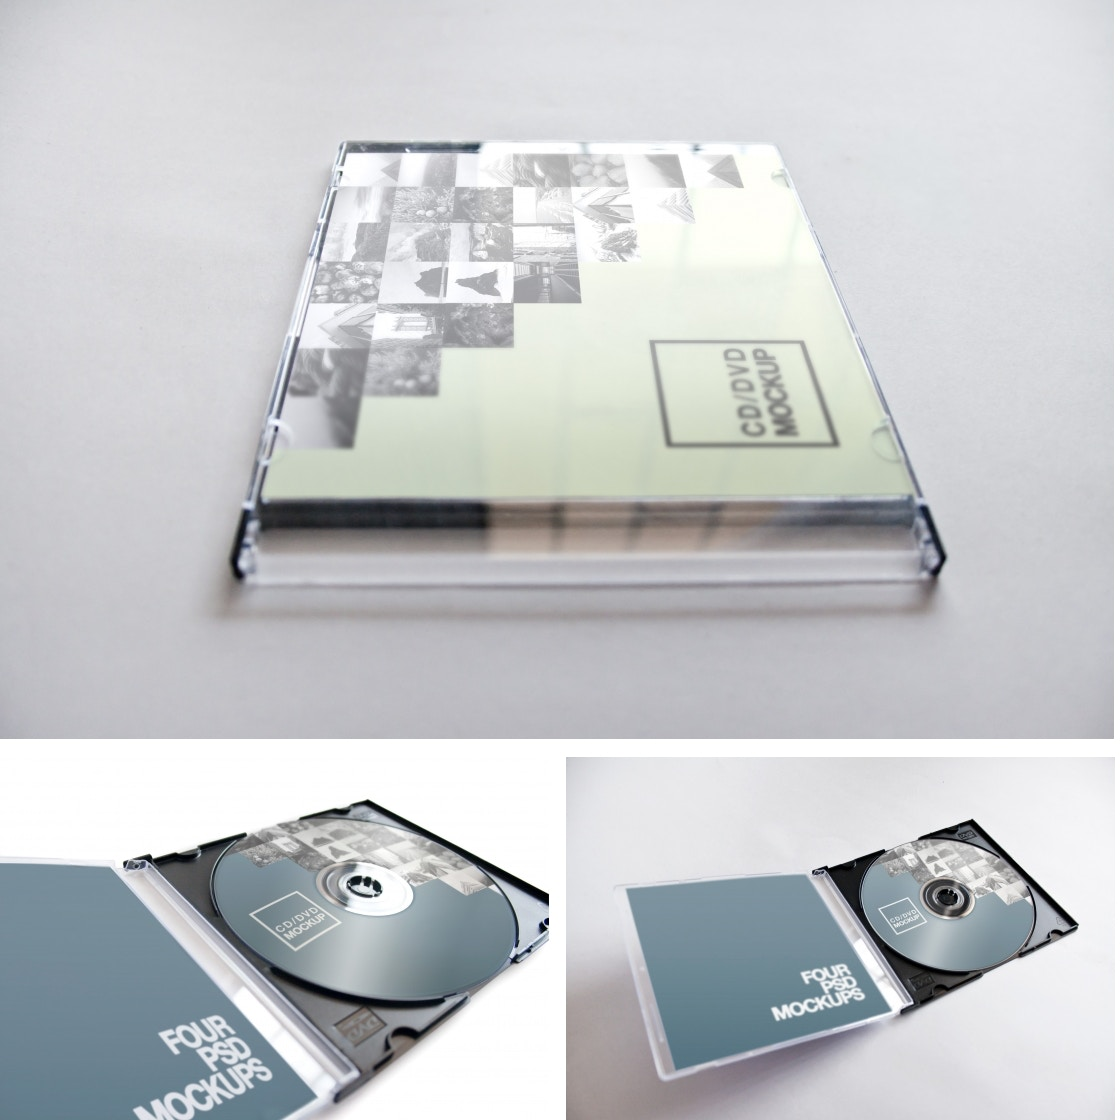 CD-DVD Jewel Case Mockups by Carlos Viloria on Original Mockups